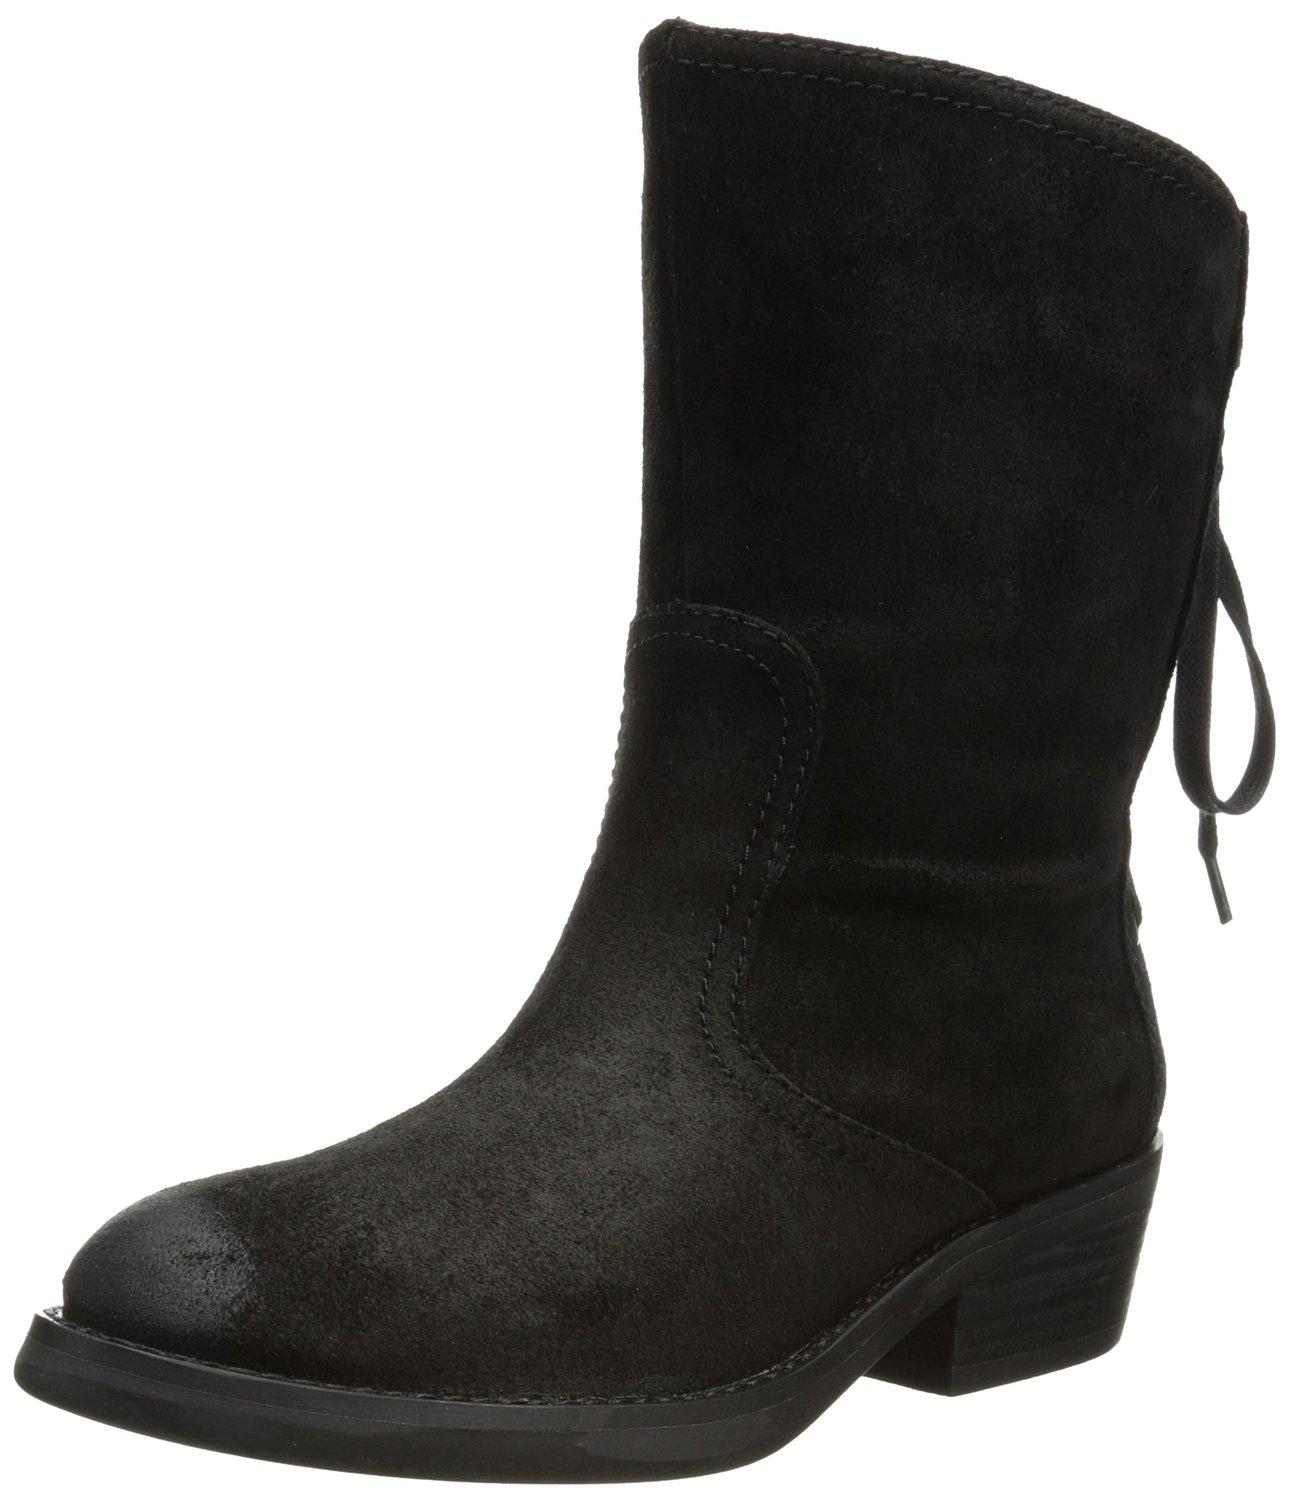 Nine West Women's Krasher Boot